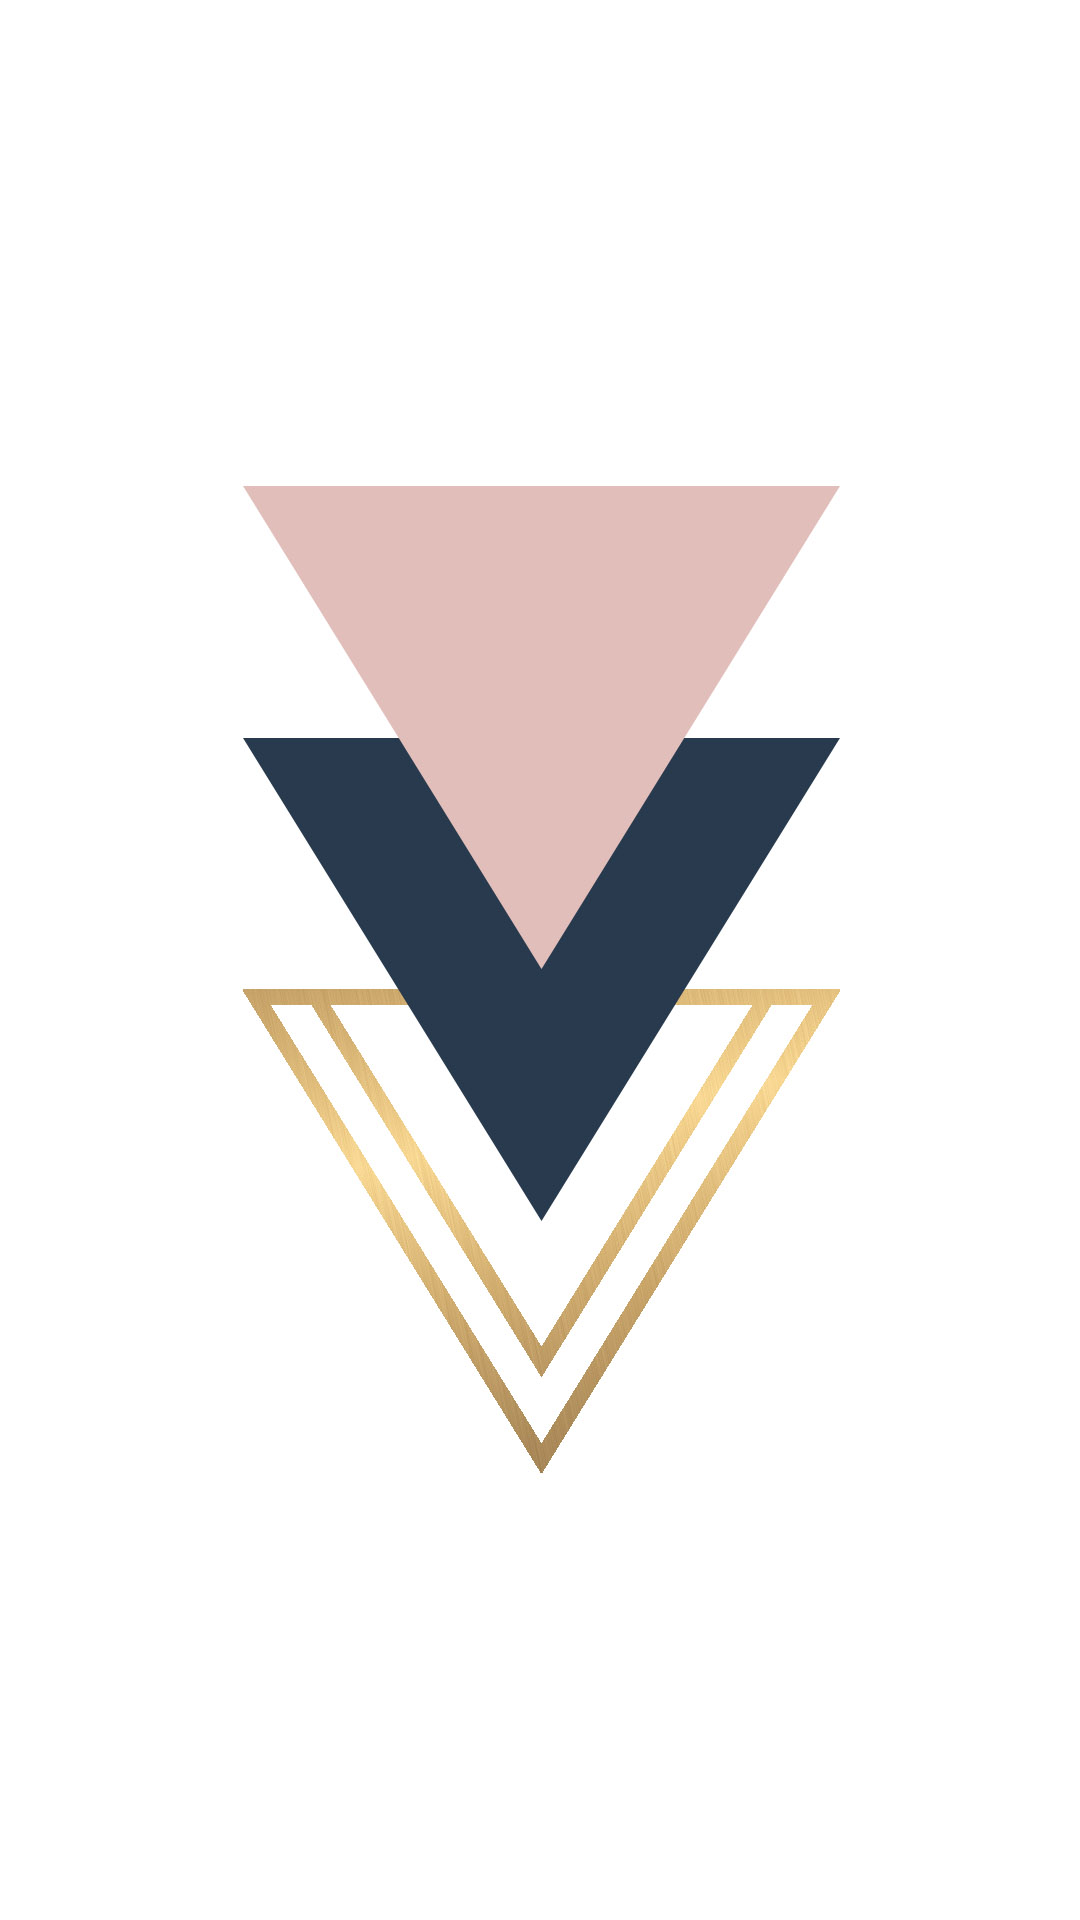 Blush-Navy-gold-foil-triangle-geo-shapes-you-can-download-for-free-on-the-blog-For-any-de-wallpaper-wp3403427